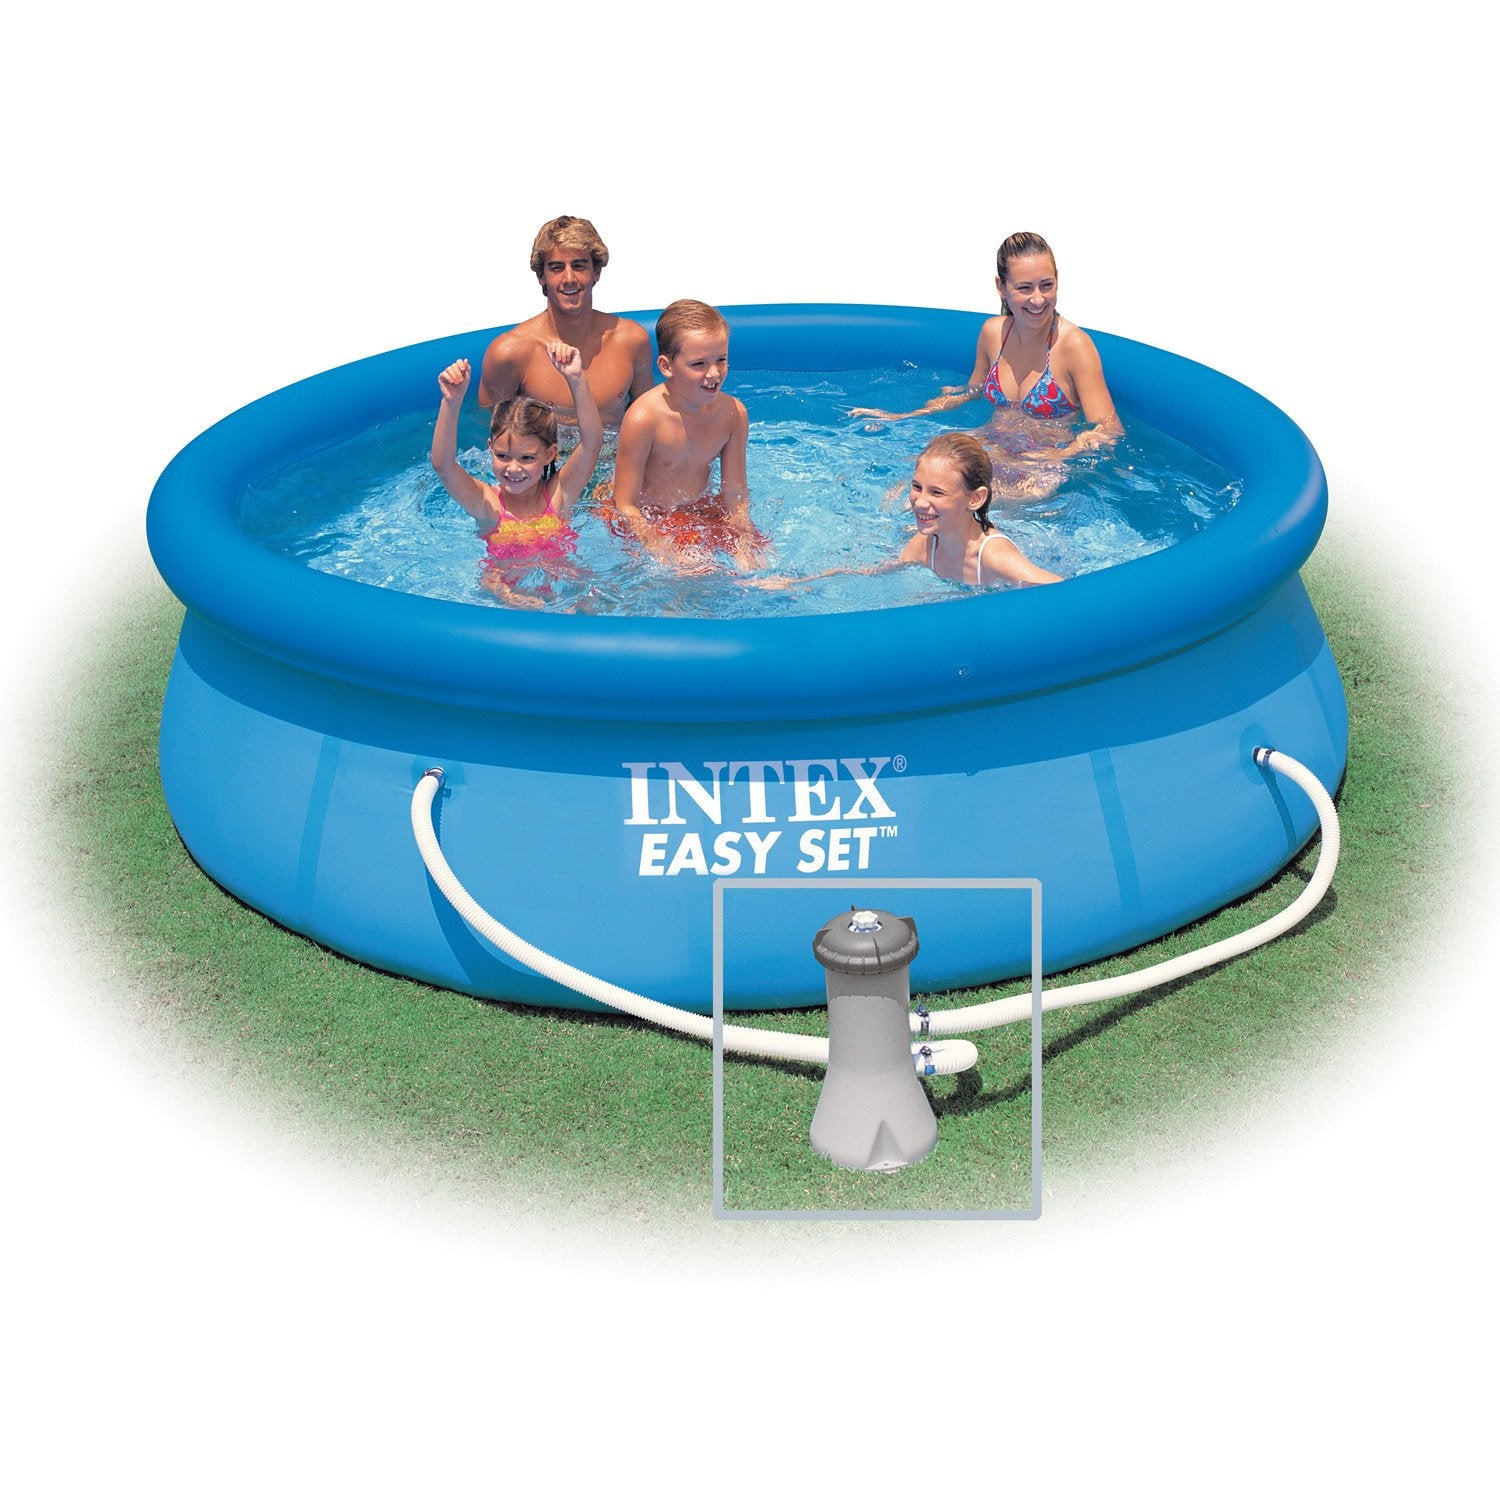 Piscine hors sol autoportante gonflable easy set intex ronde diam m leroy merlin - Piscine gonflable leroy merlin ...